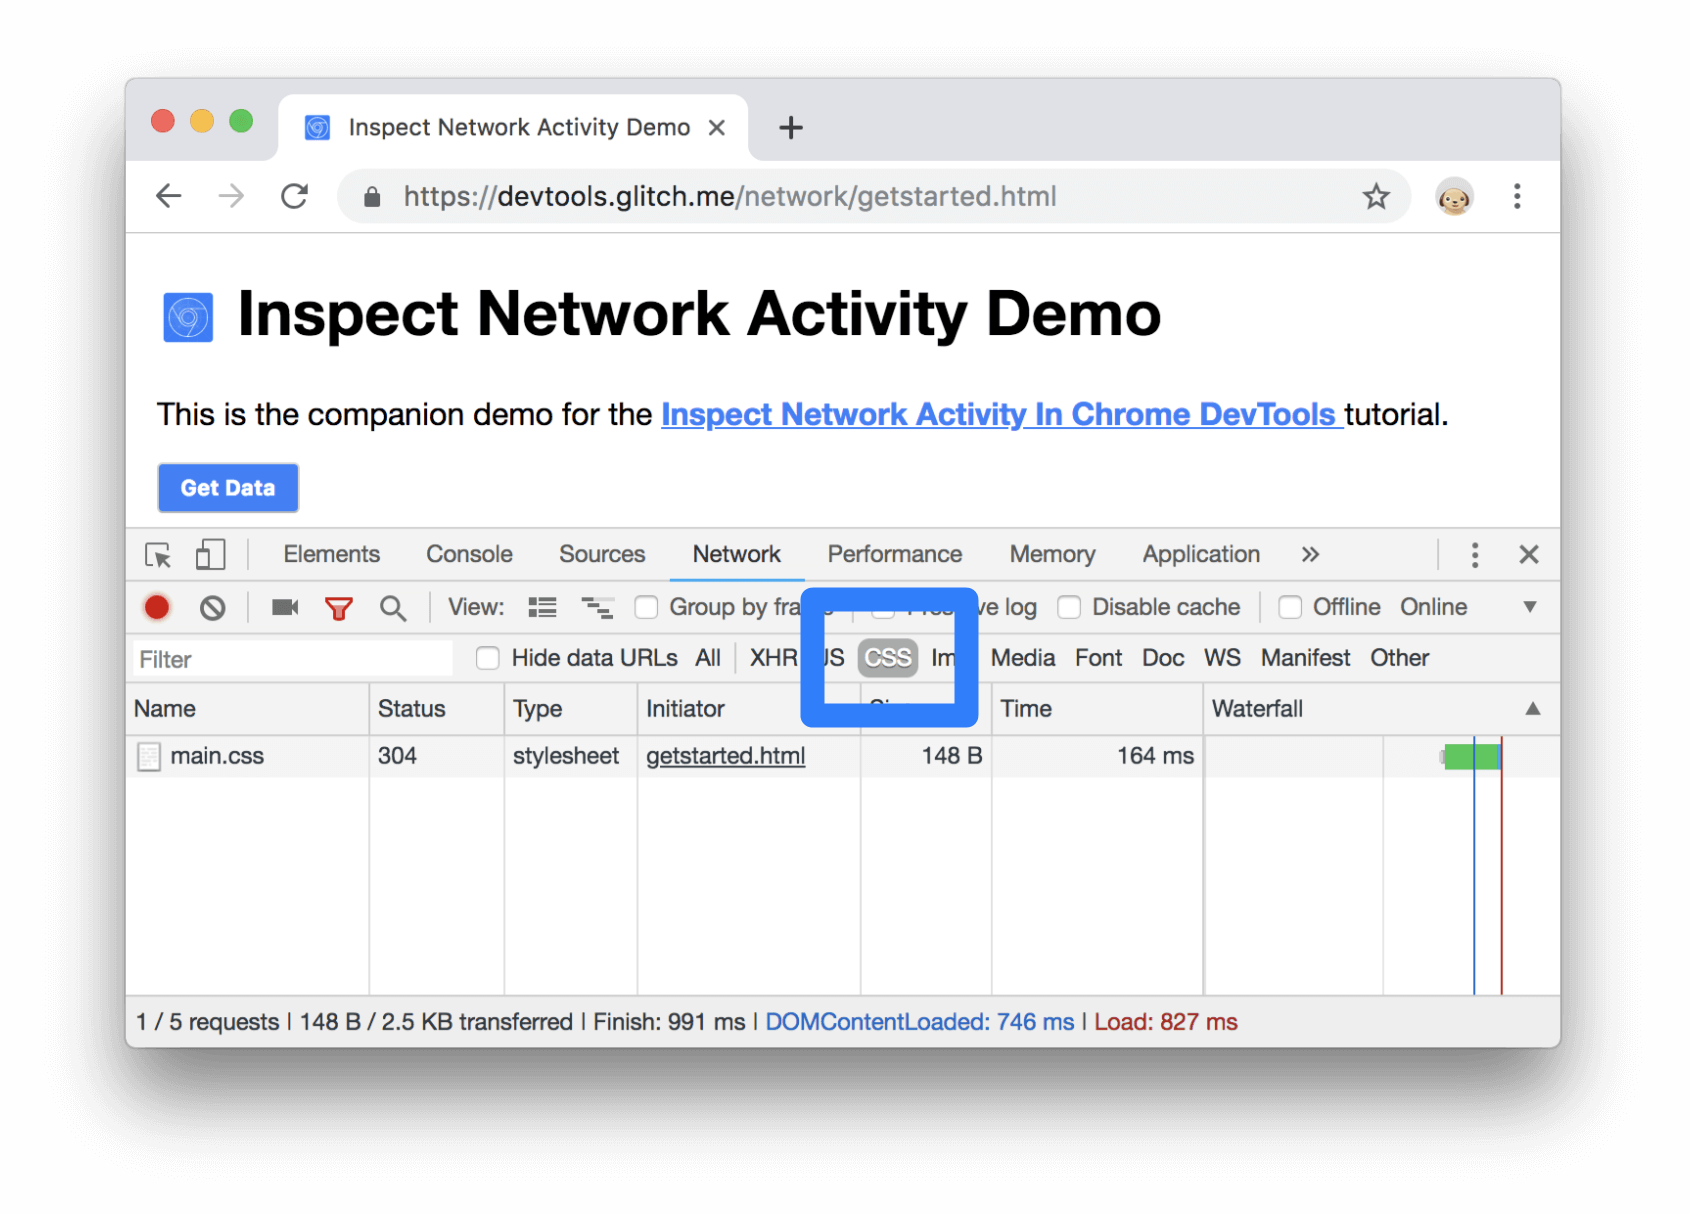 Filtering for CSS in the Network Log